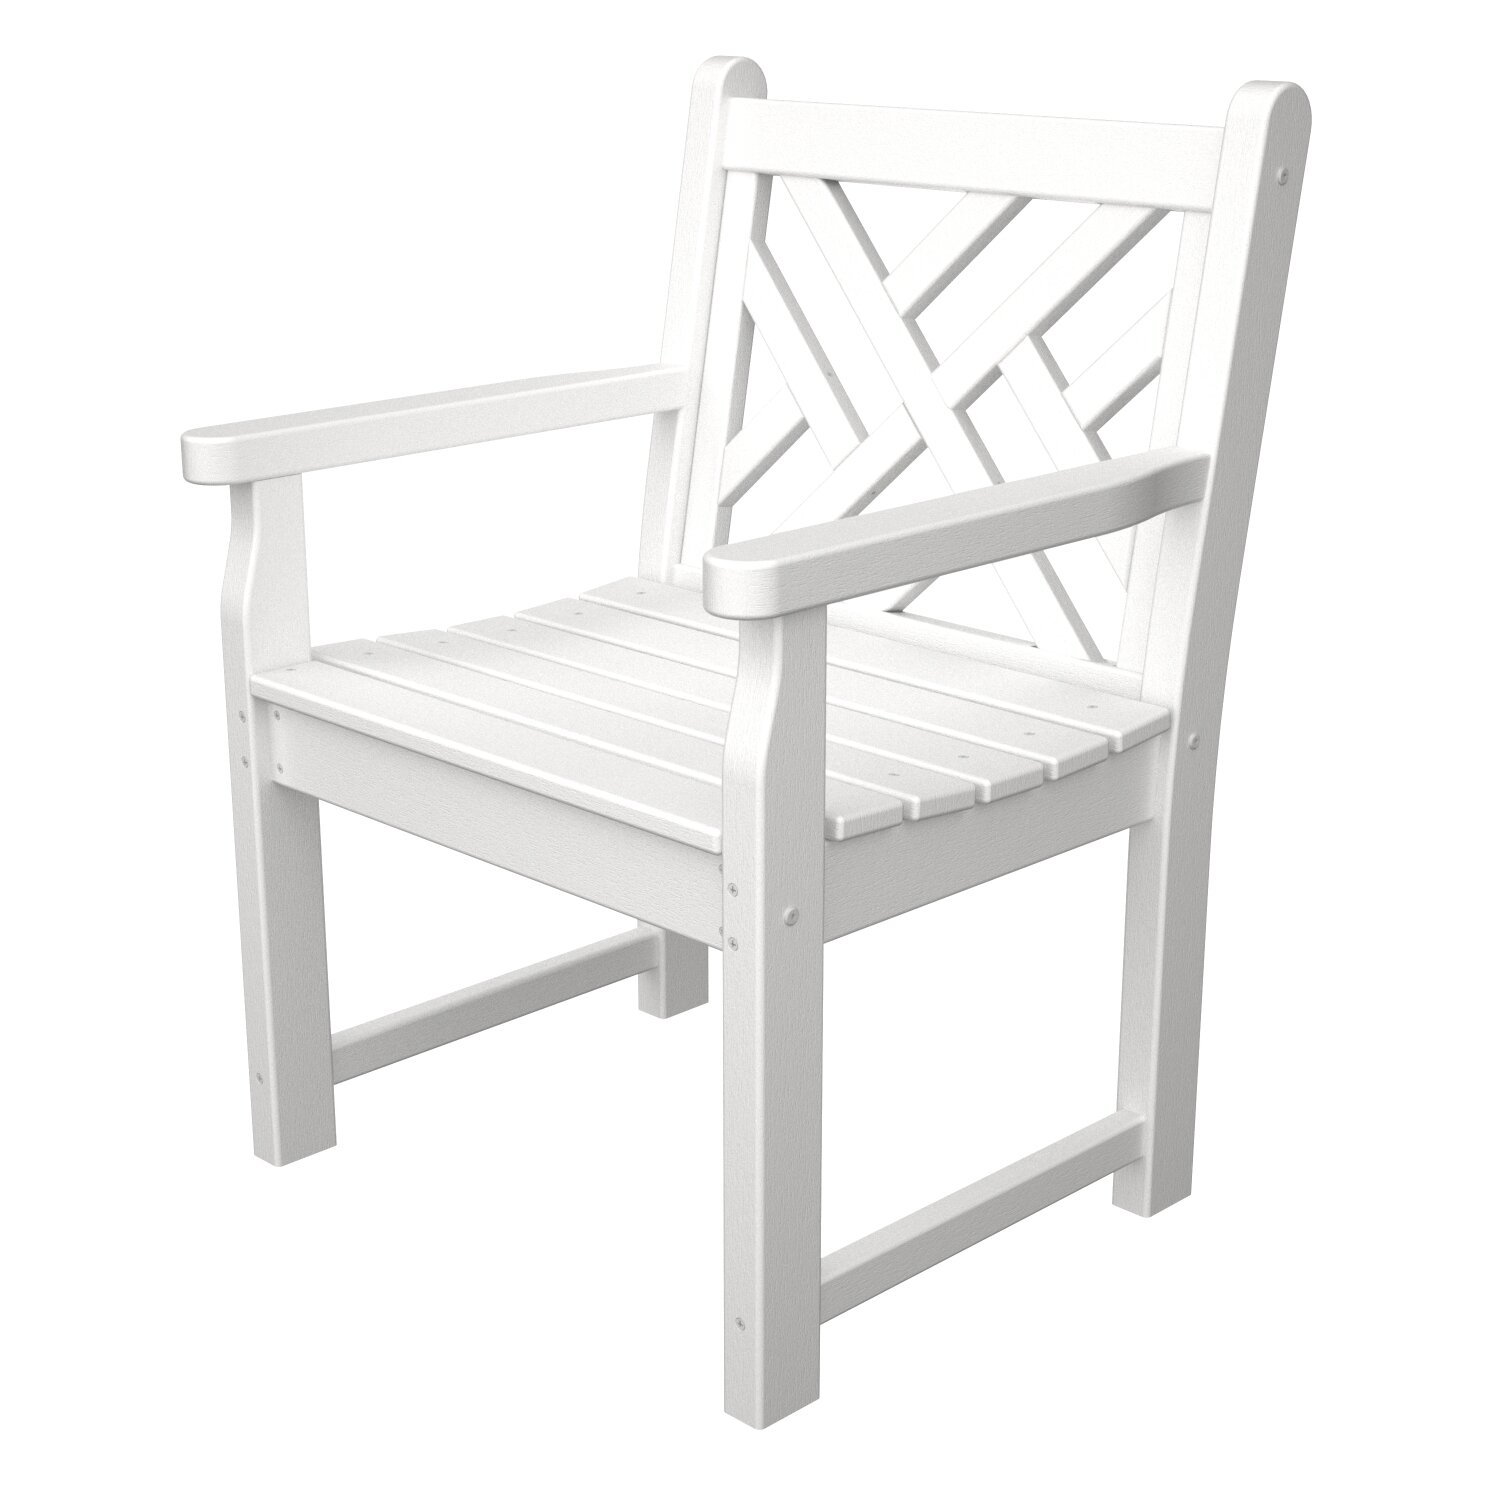 Chippendale arm chair - Chippendale Garden Arm Chair